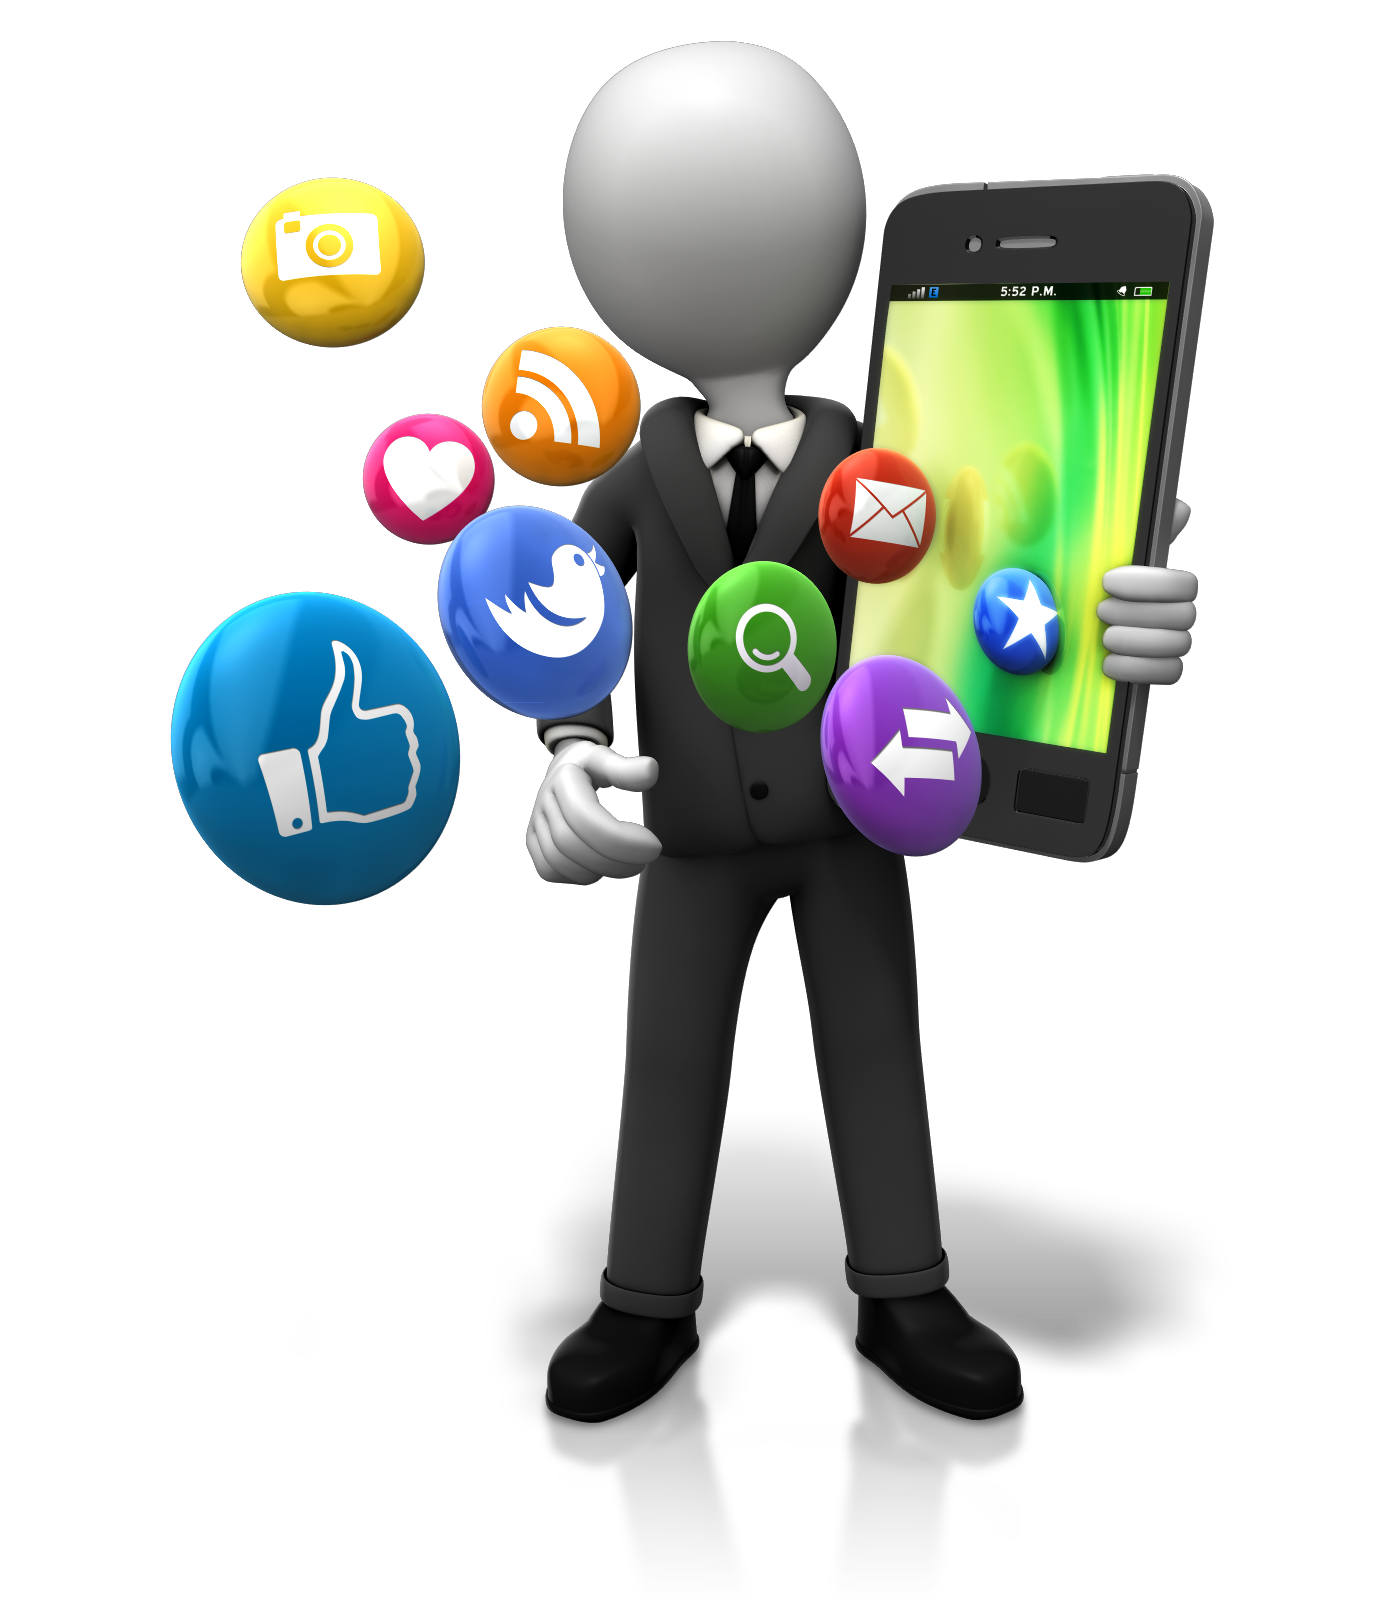 holding_big_smart_phone_icons_1600_clr_9132